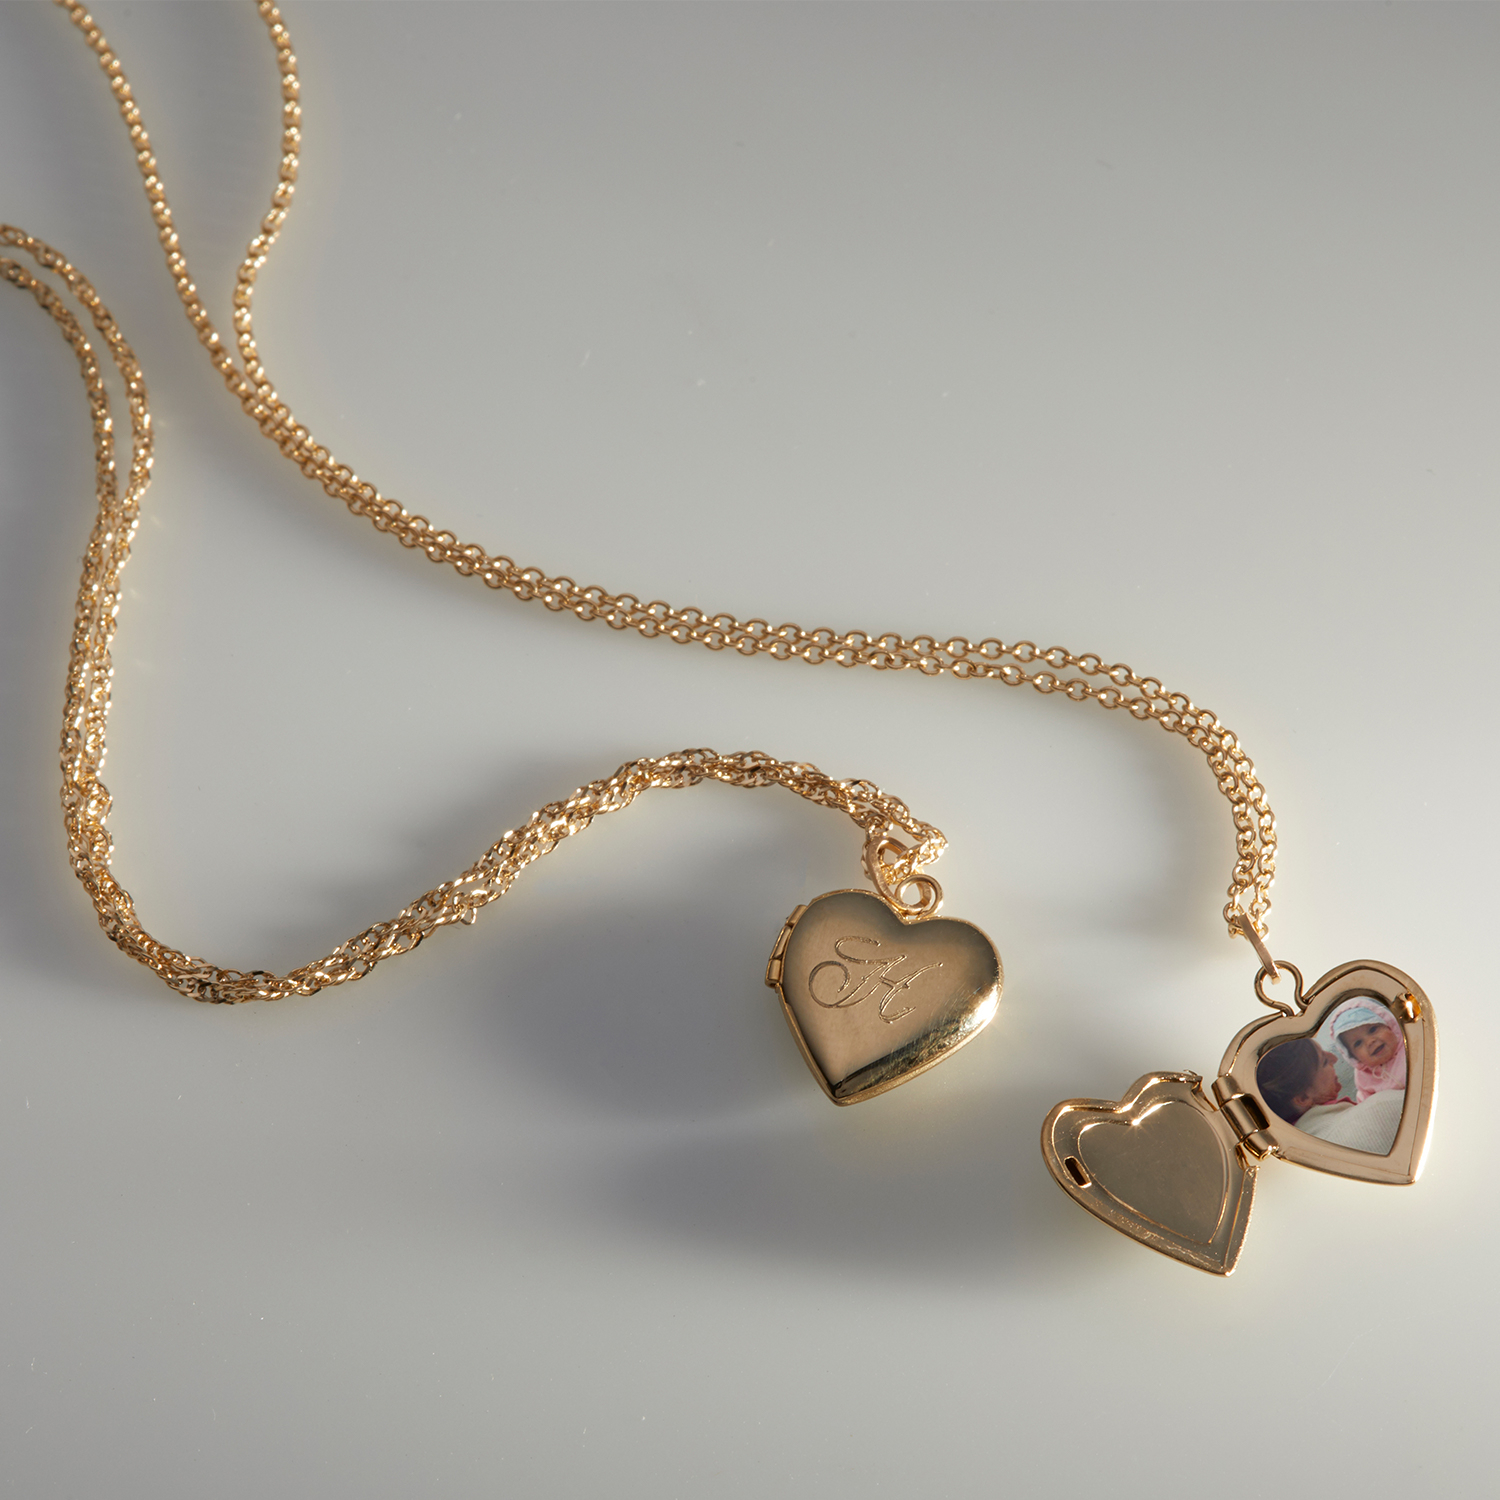 Dollhouse Heart Locket, Gold With Regard To Best And Newest Heart Padlock Locket Element Necklaces (View 9 of 25)